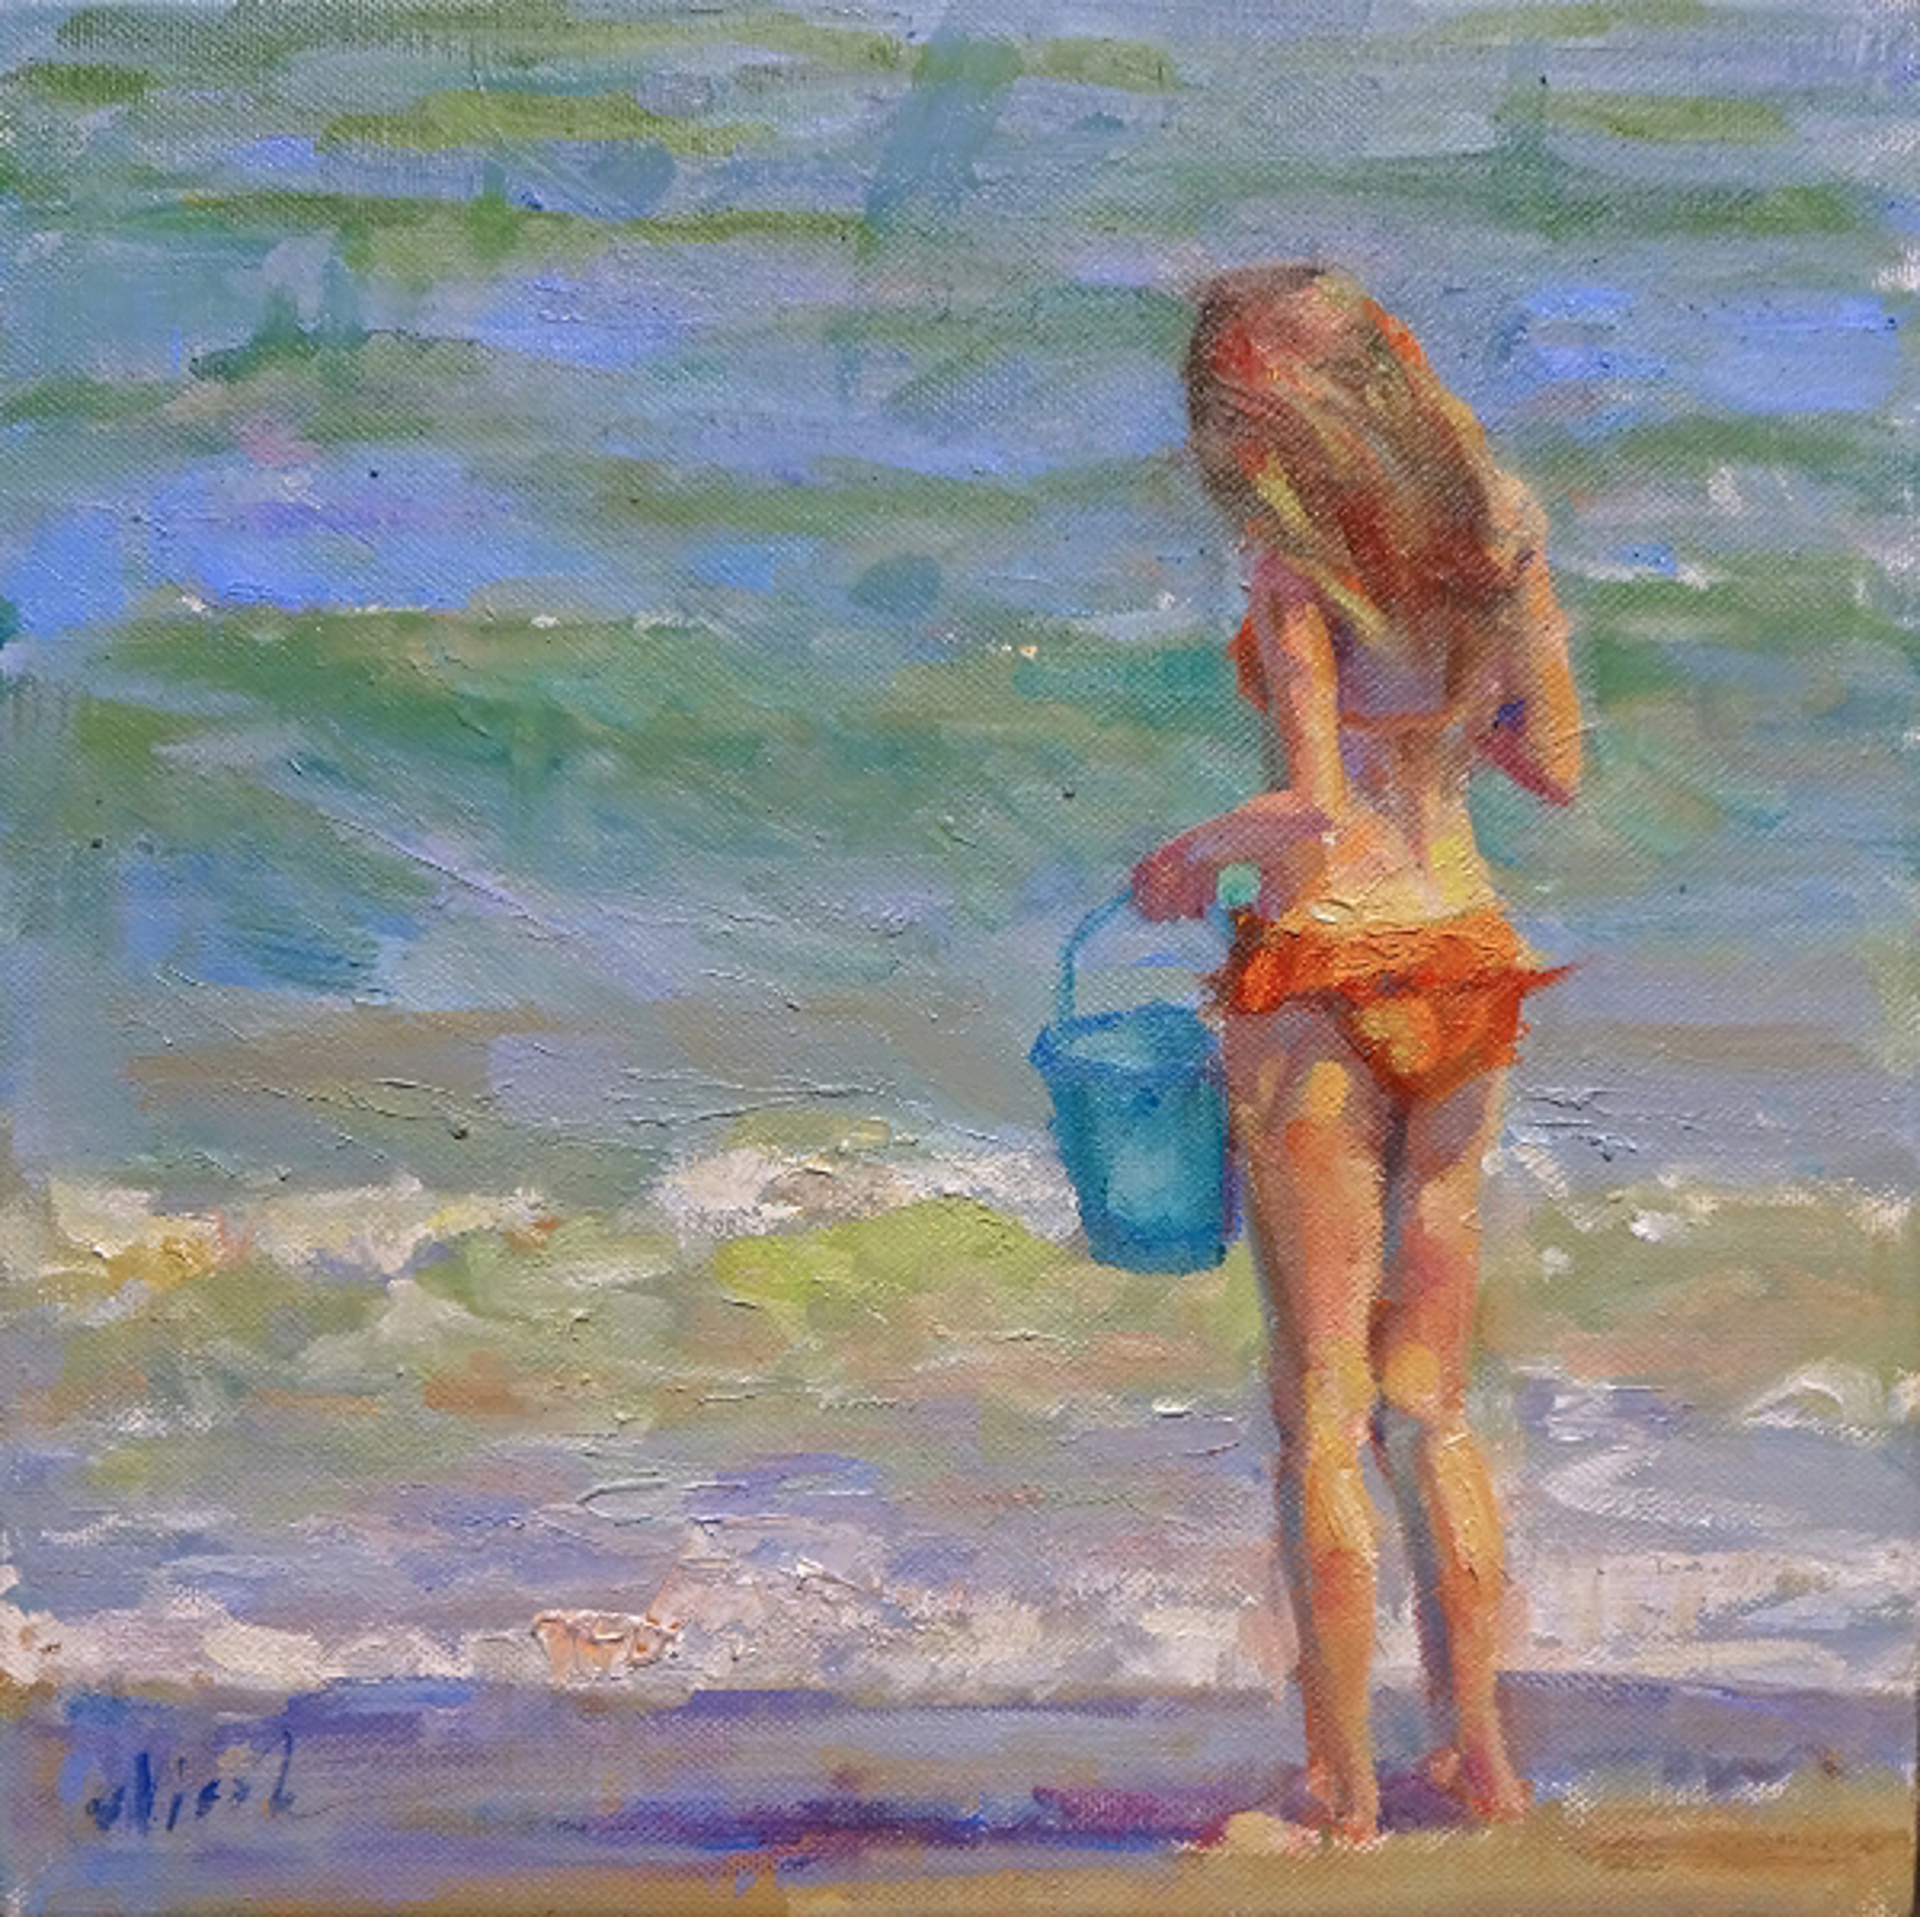 Sea Shells and Sunscreen by Nicole White Kennedy